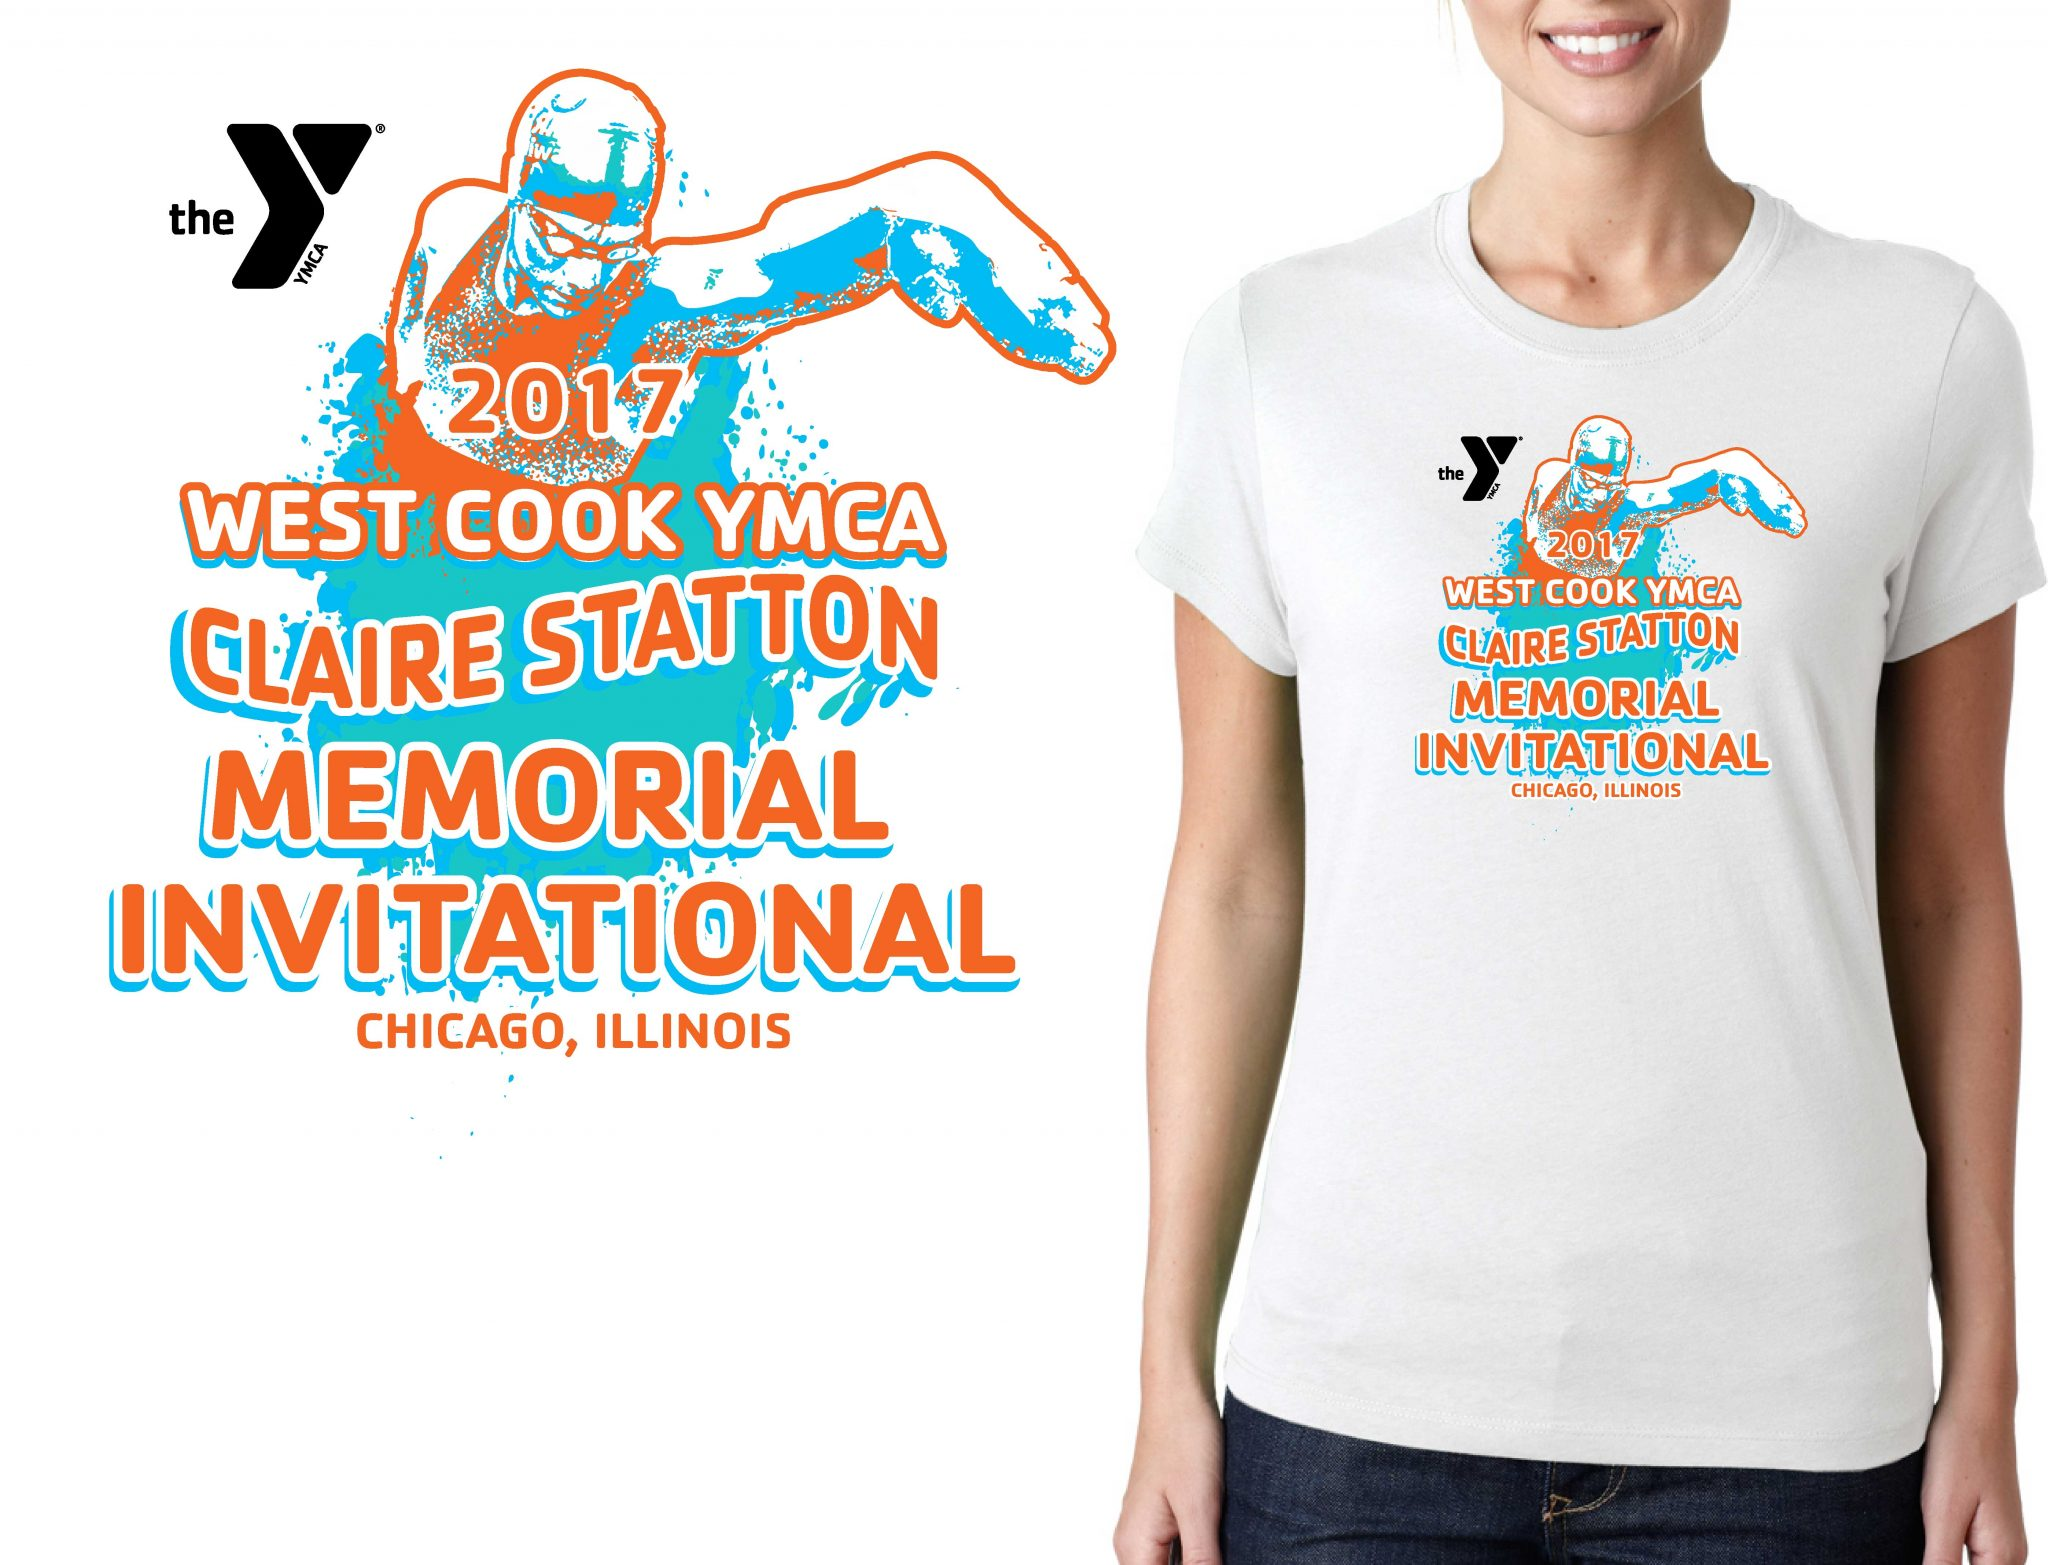 SWIMMING LOGO for Claire-Statton-Memorial-Invitational T-SHIRT UrArtStudio